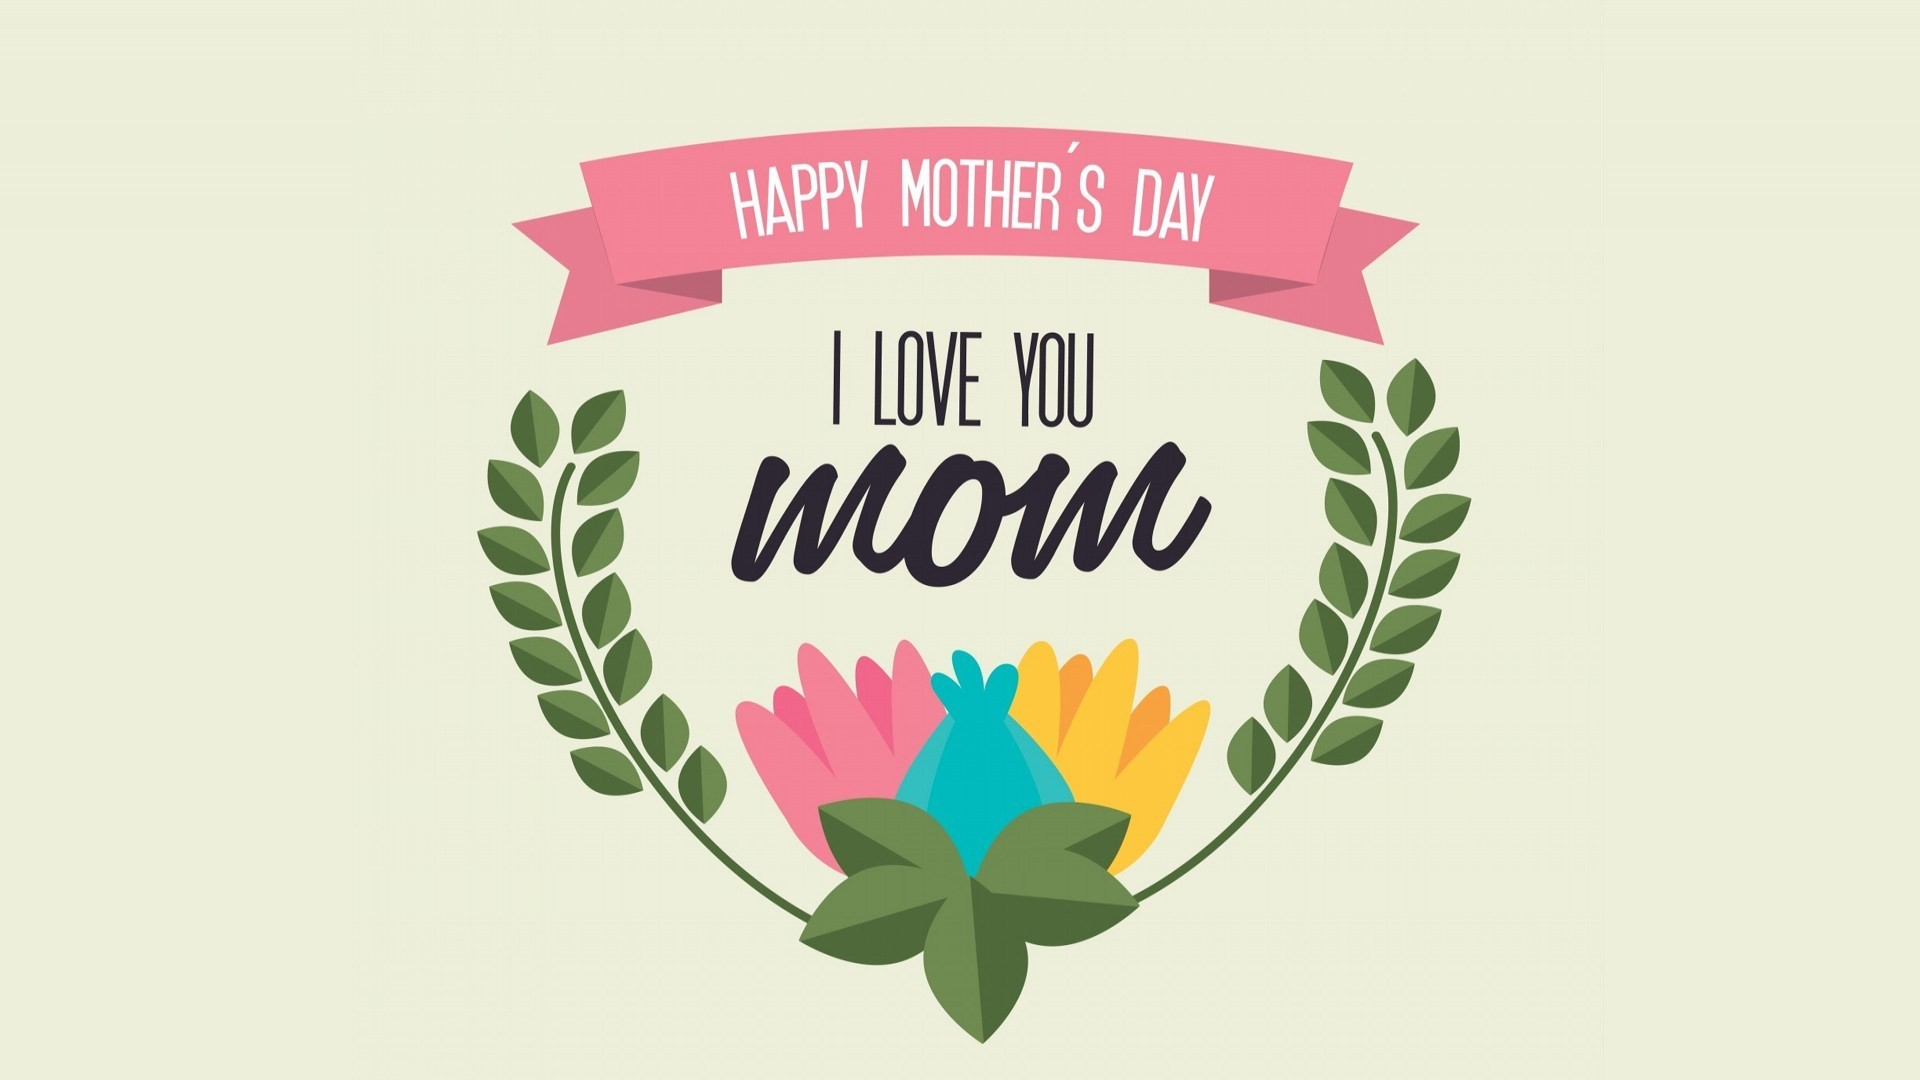 I Love You MomWallpapers for Mother's Day 2018